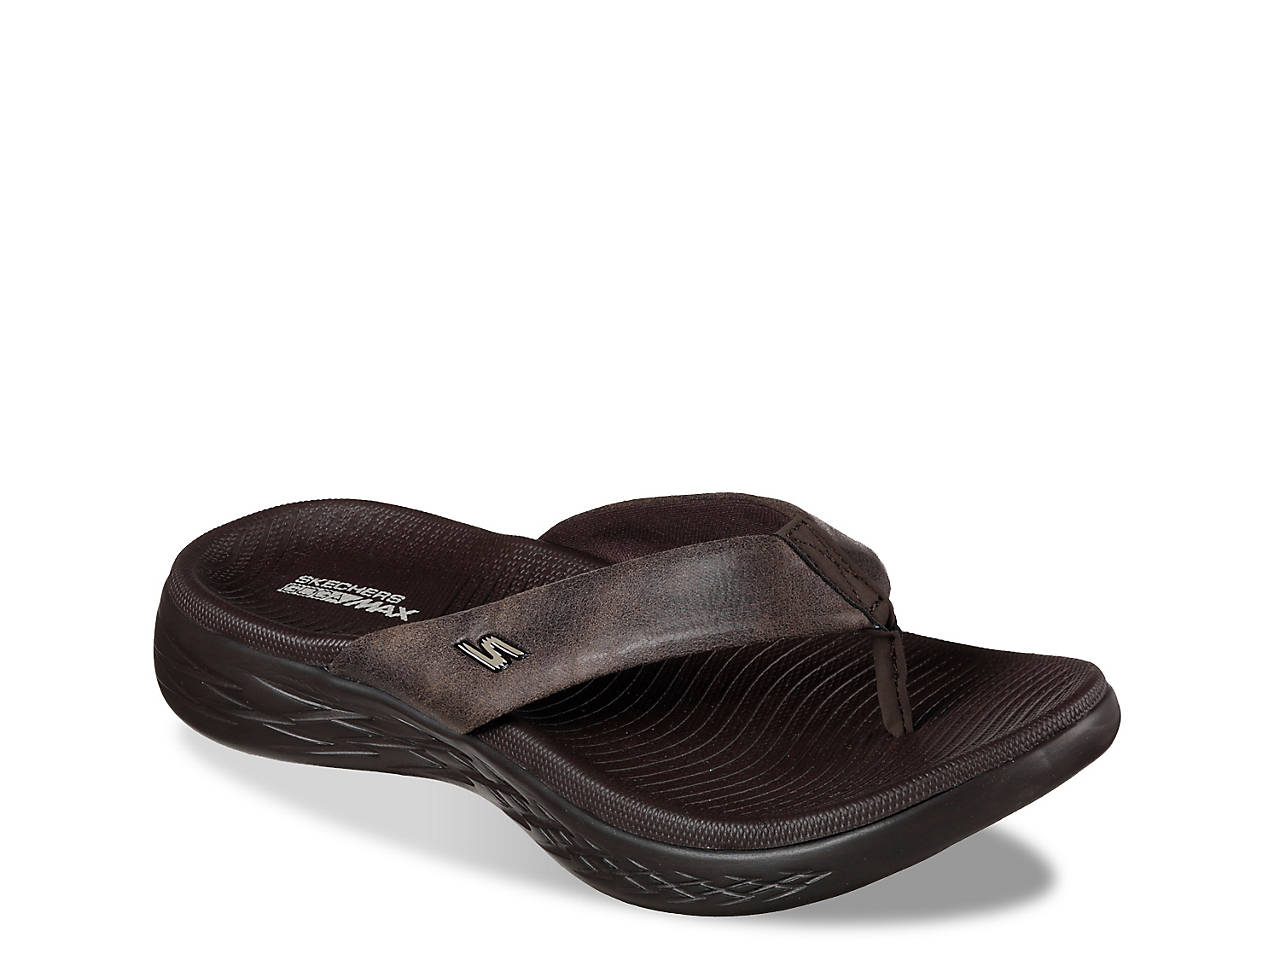 fd47460bcf79 Skechers On The Go 600 Polished Flip Flop Women s Shoes